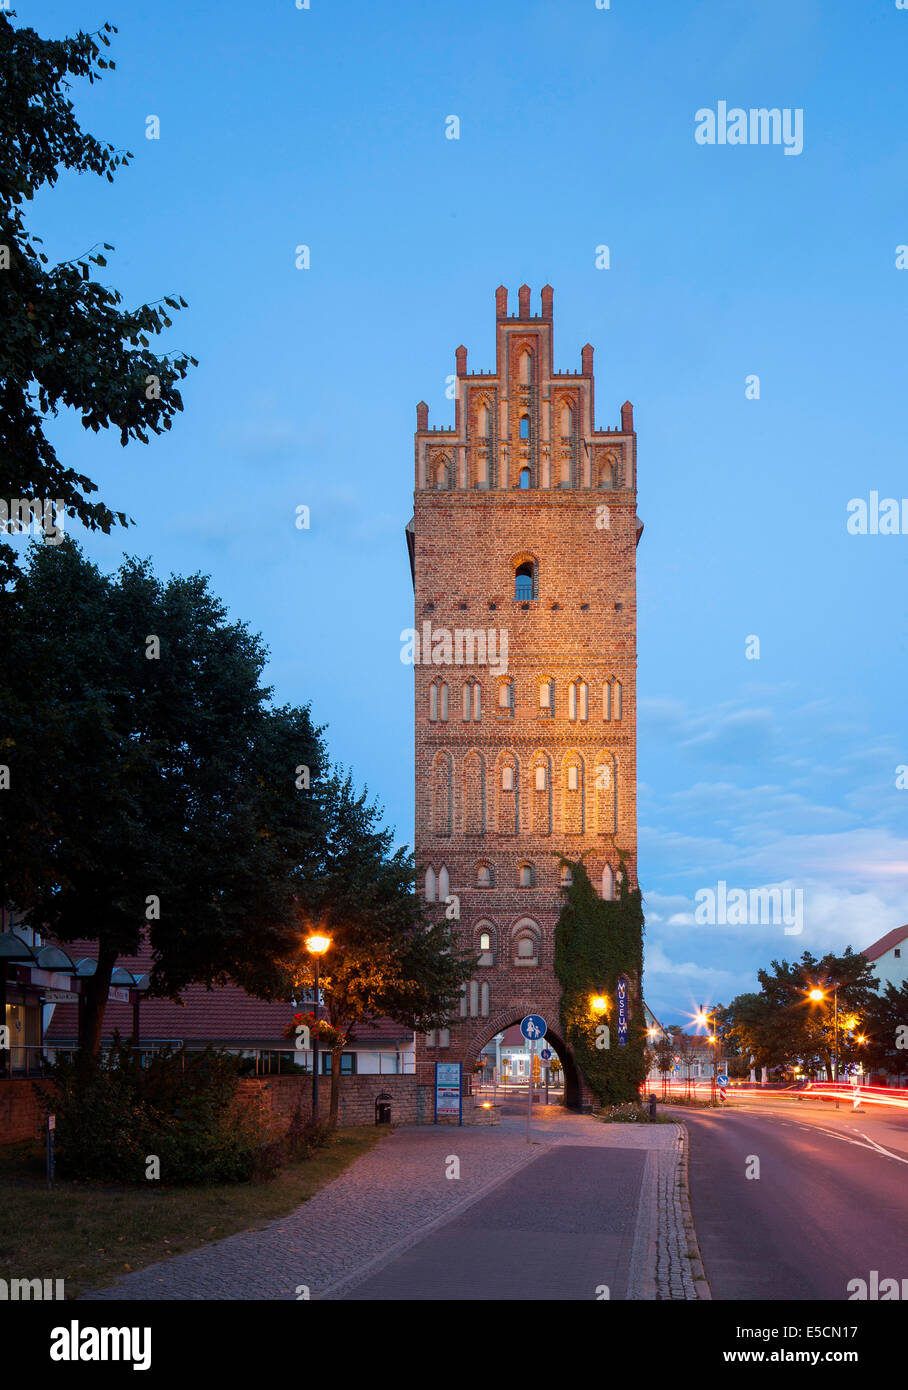 Steintor gate of the medieval fortifications, Anklam, Mecklenburg-Western Pomerania, Germany - Stock Image